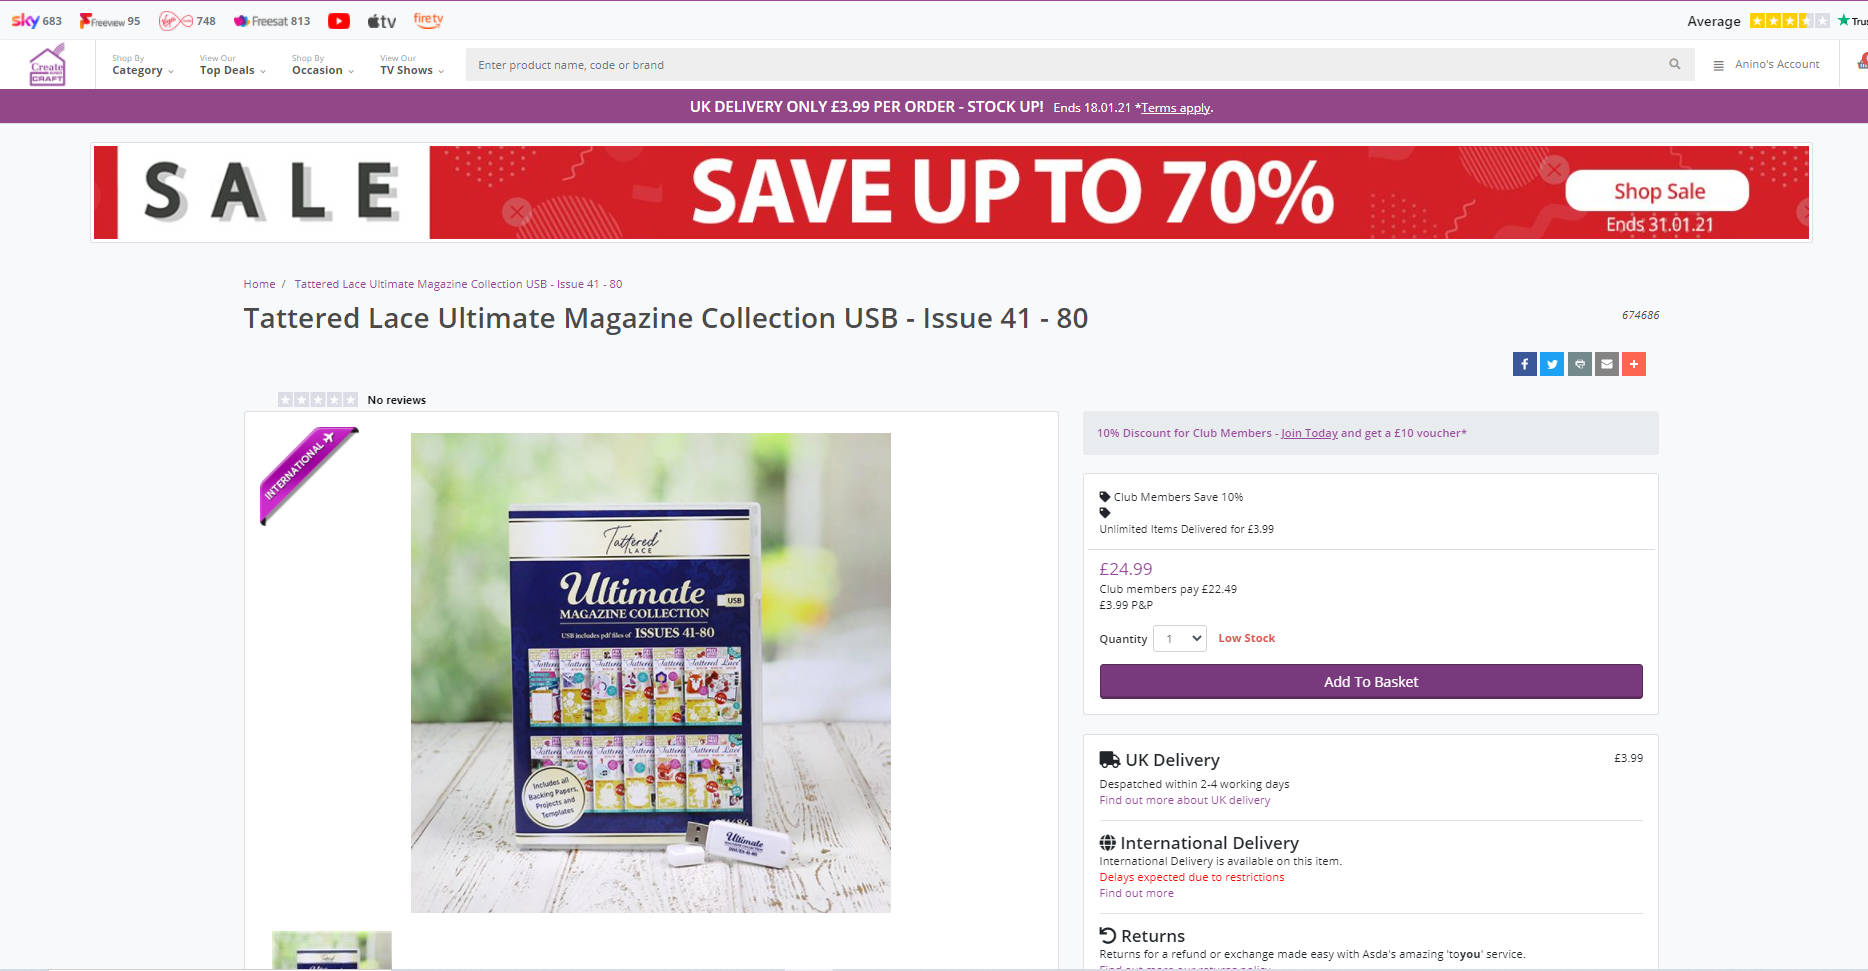 Tattered-Lace-Ultimate-Magazine-Collection-USB-Issue-41-80